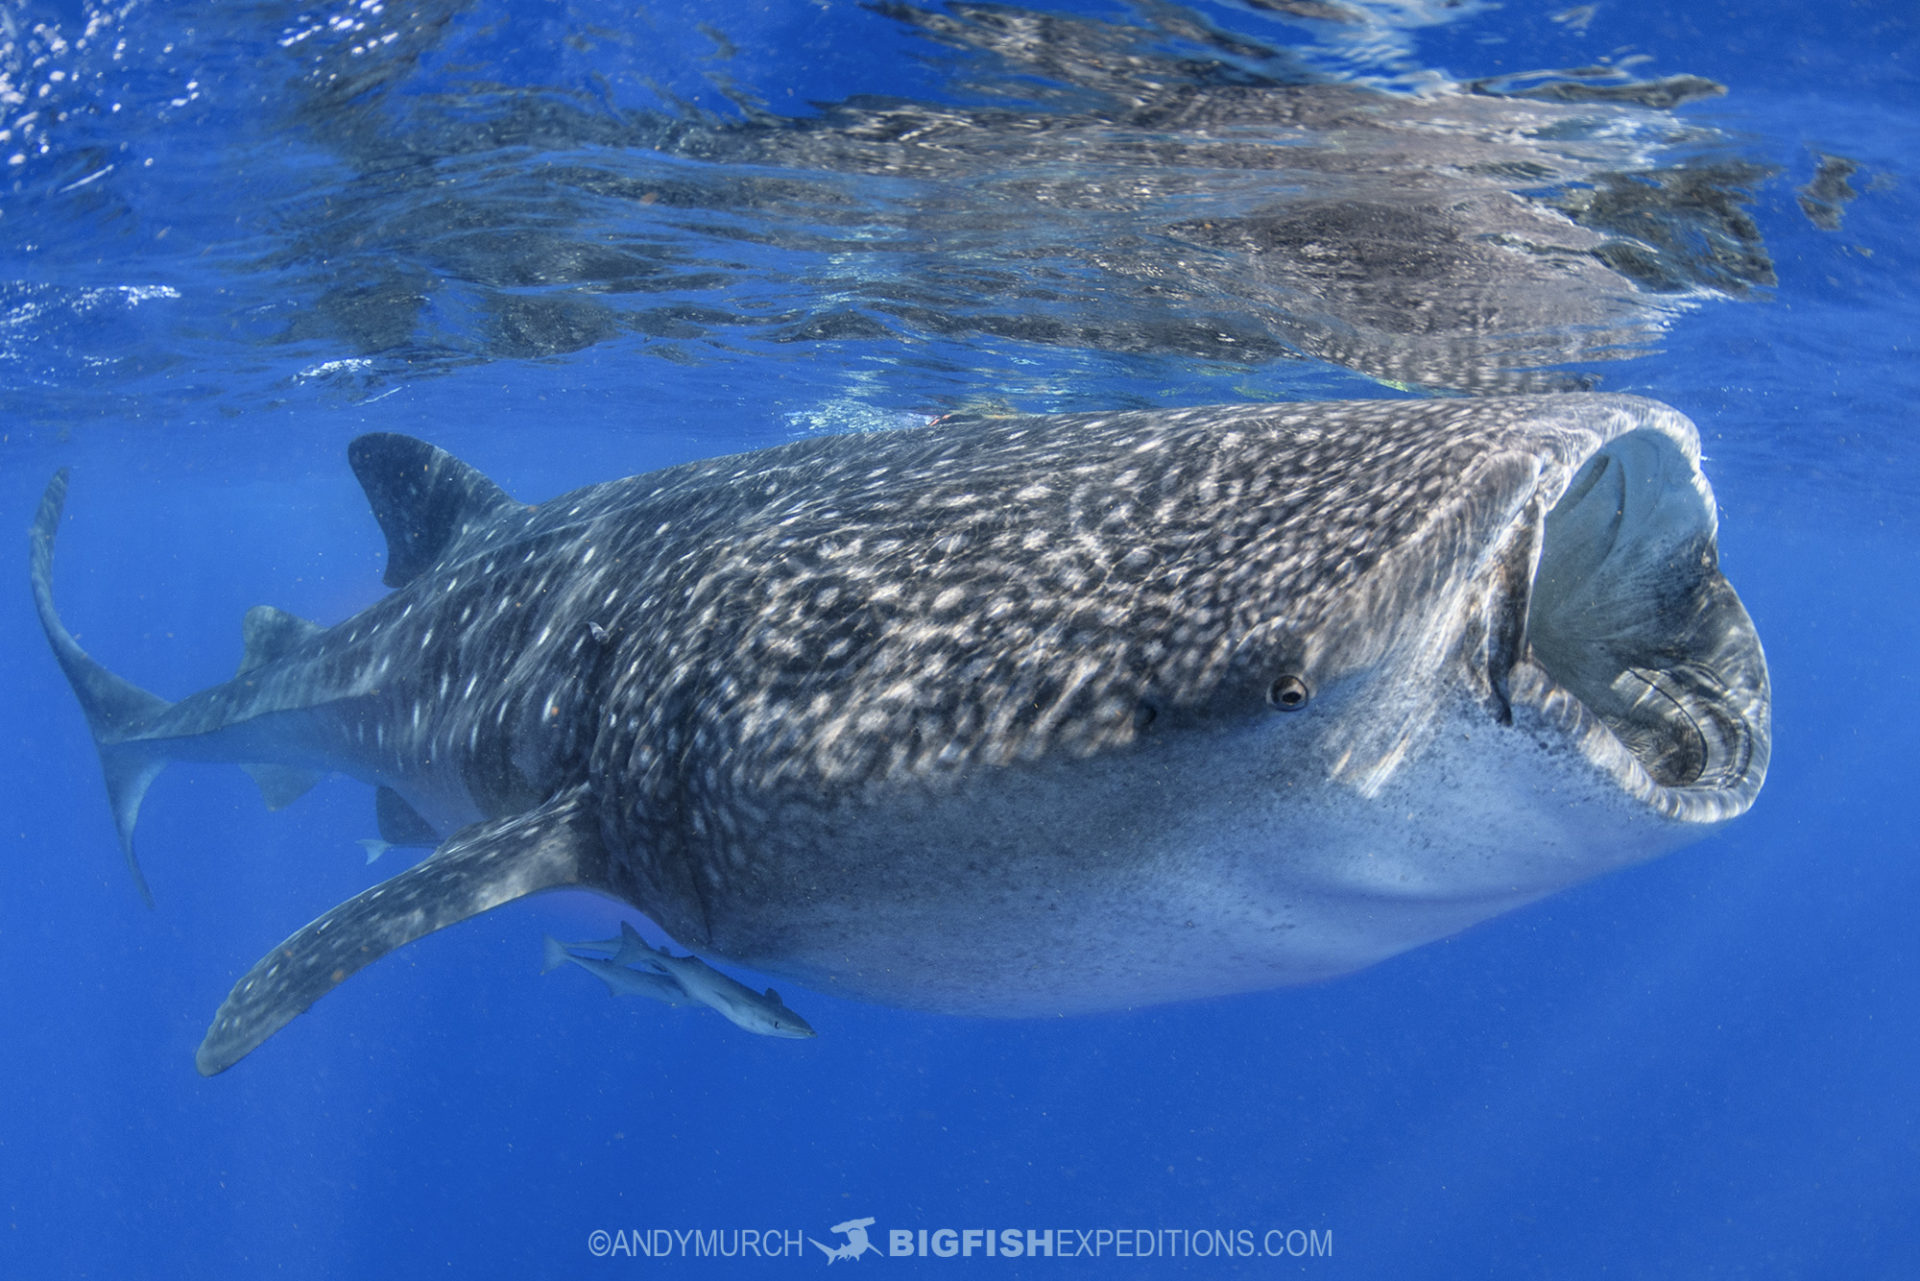 Snorkeling with Whale Sharks in Mexico.